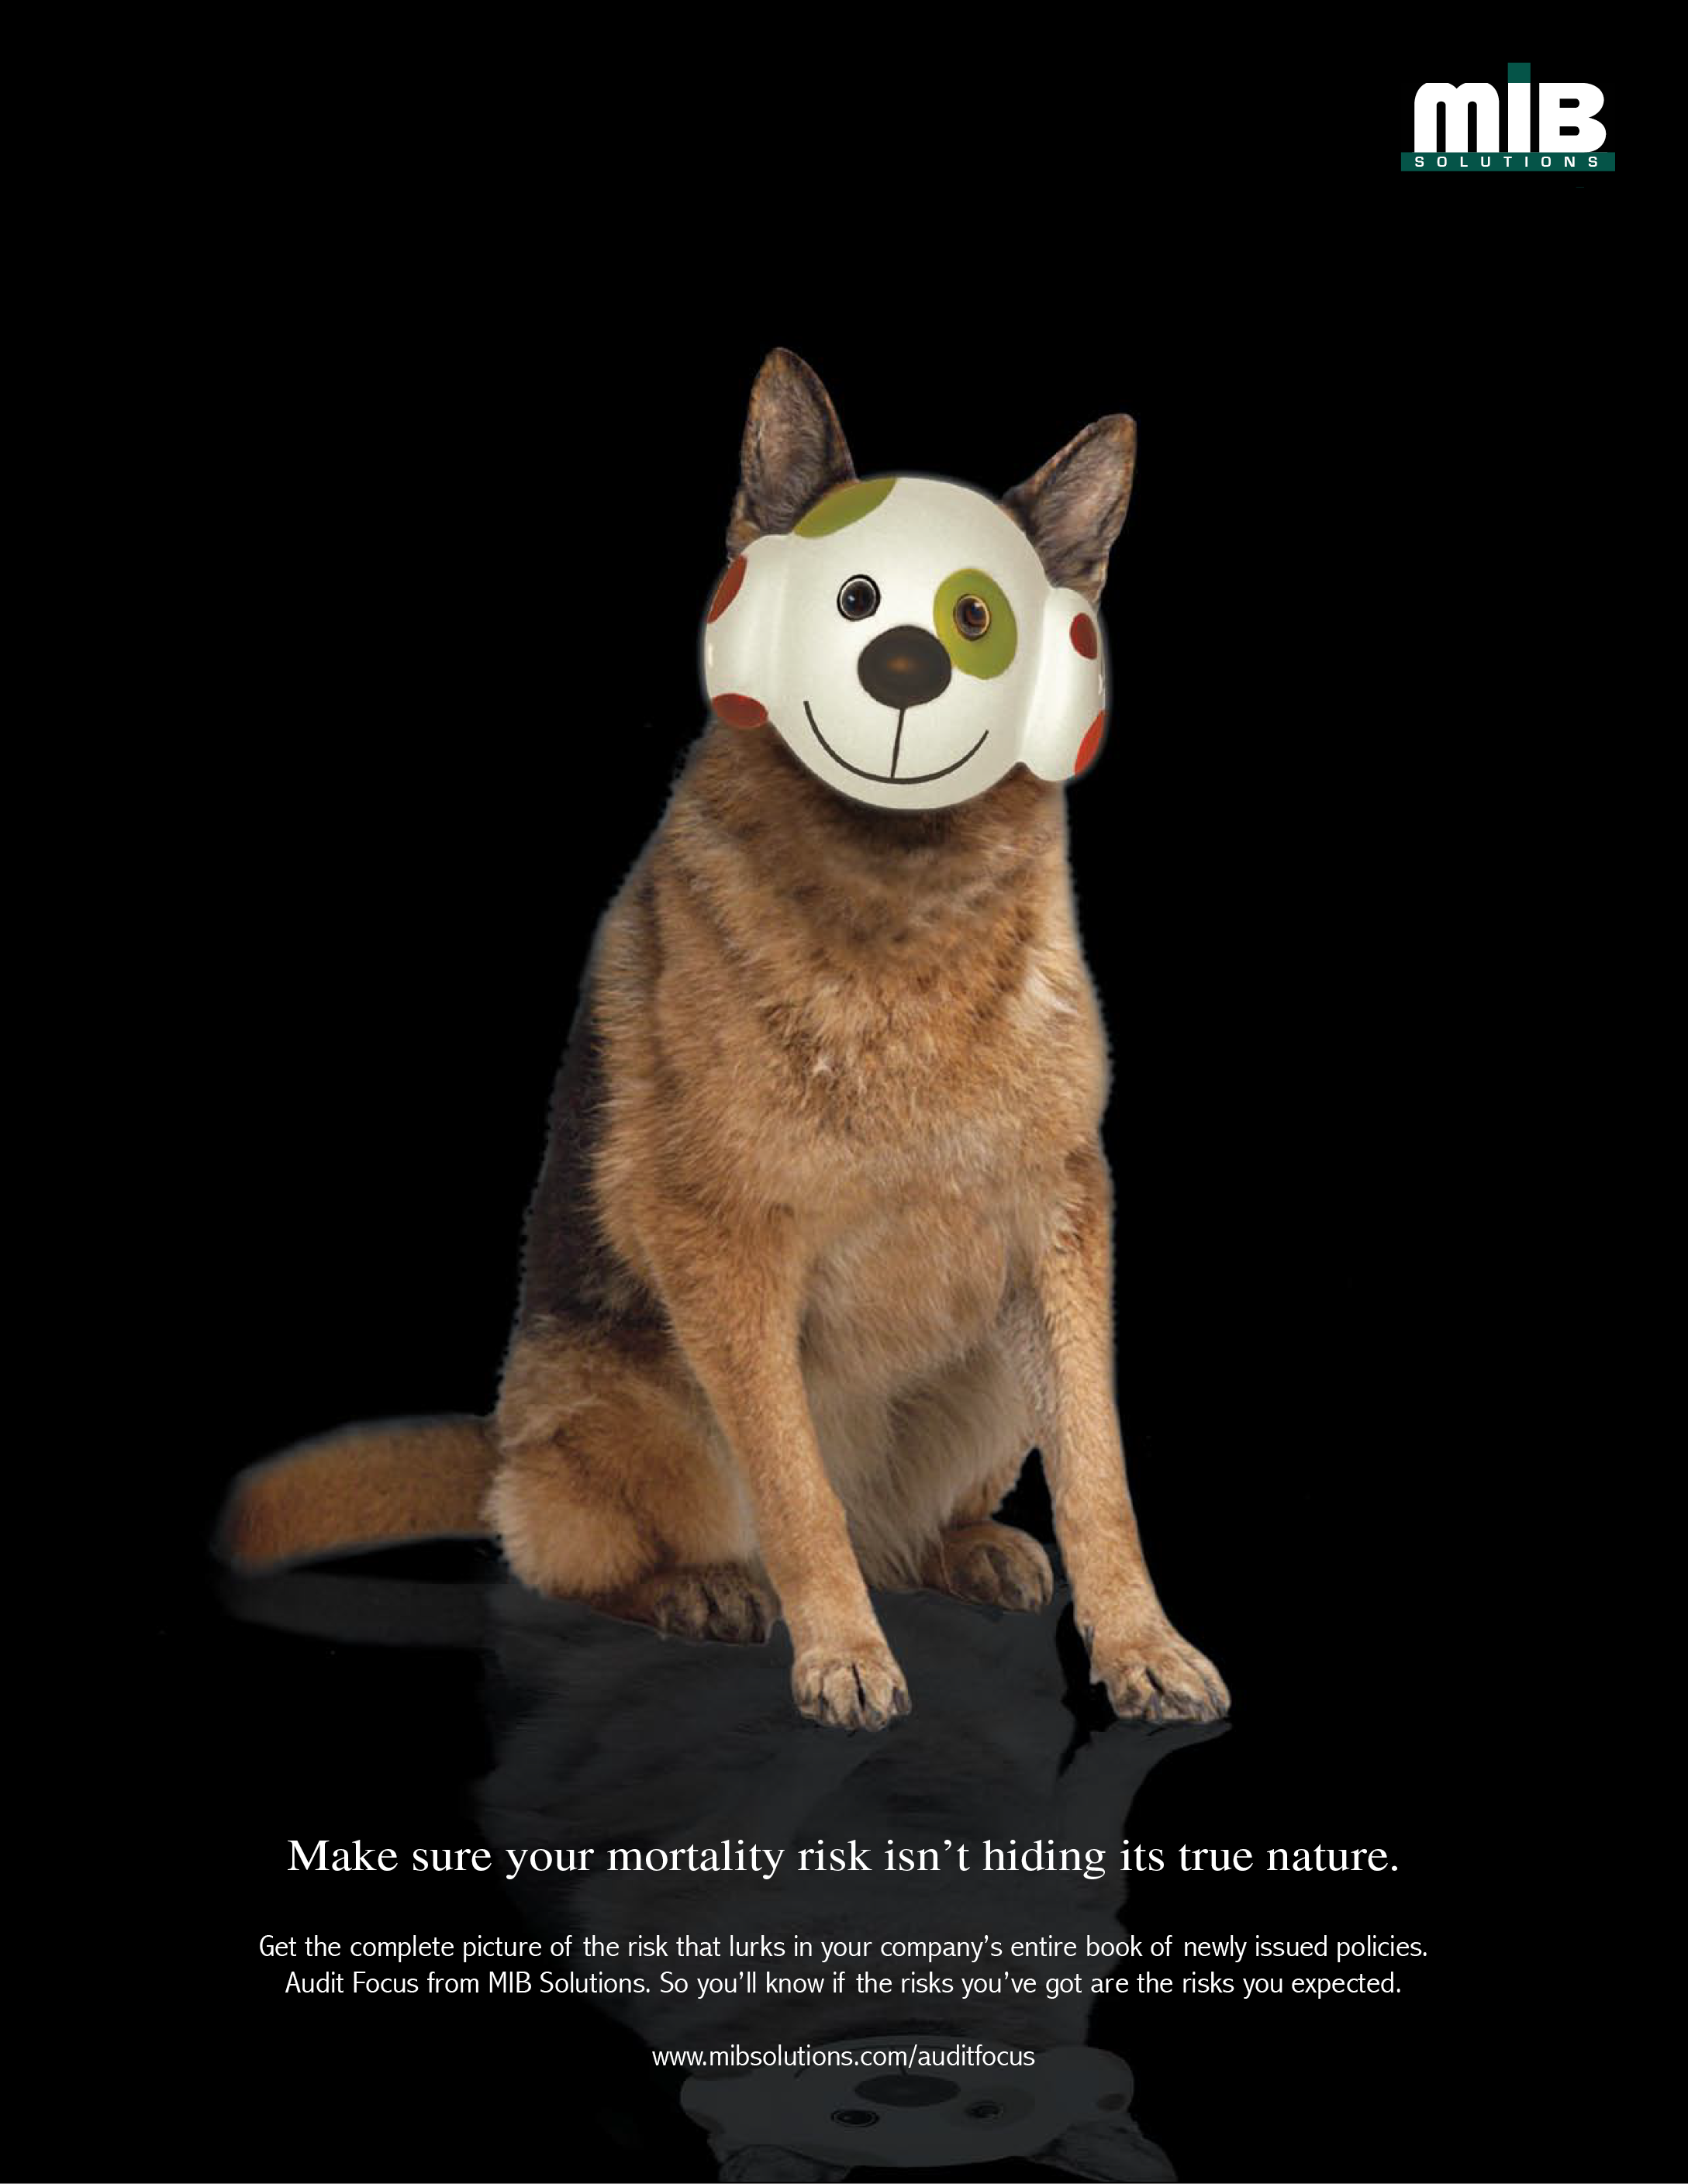 MIB ad - dog